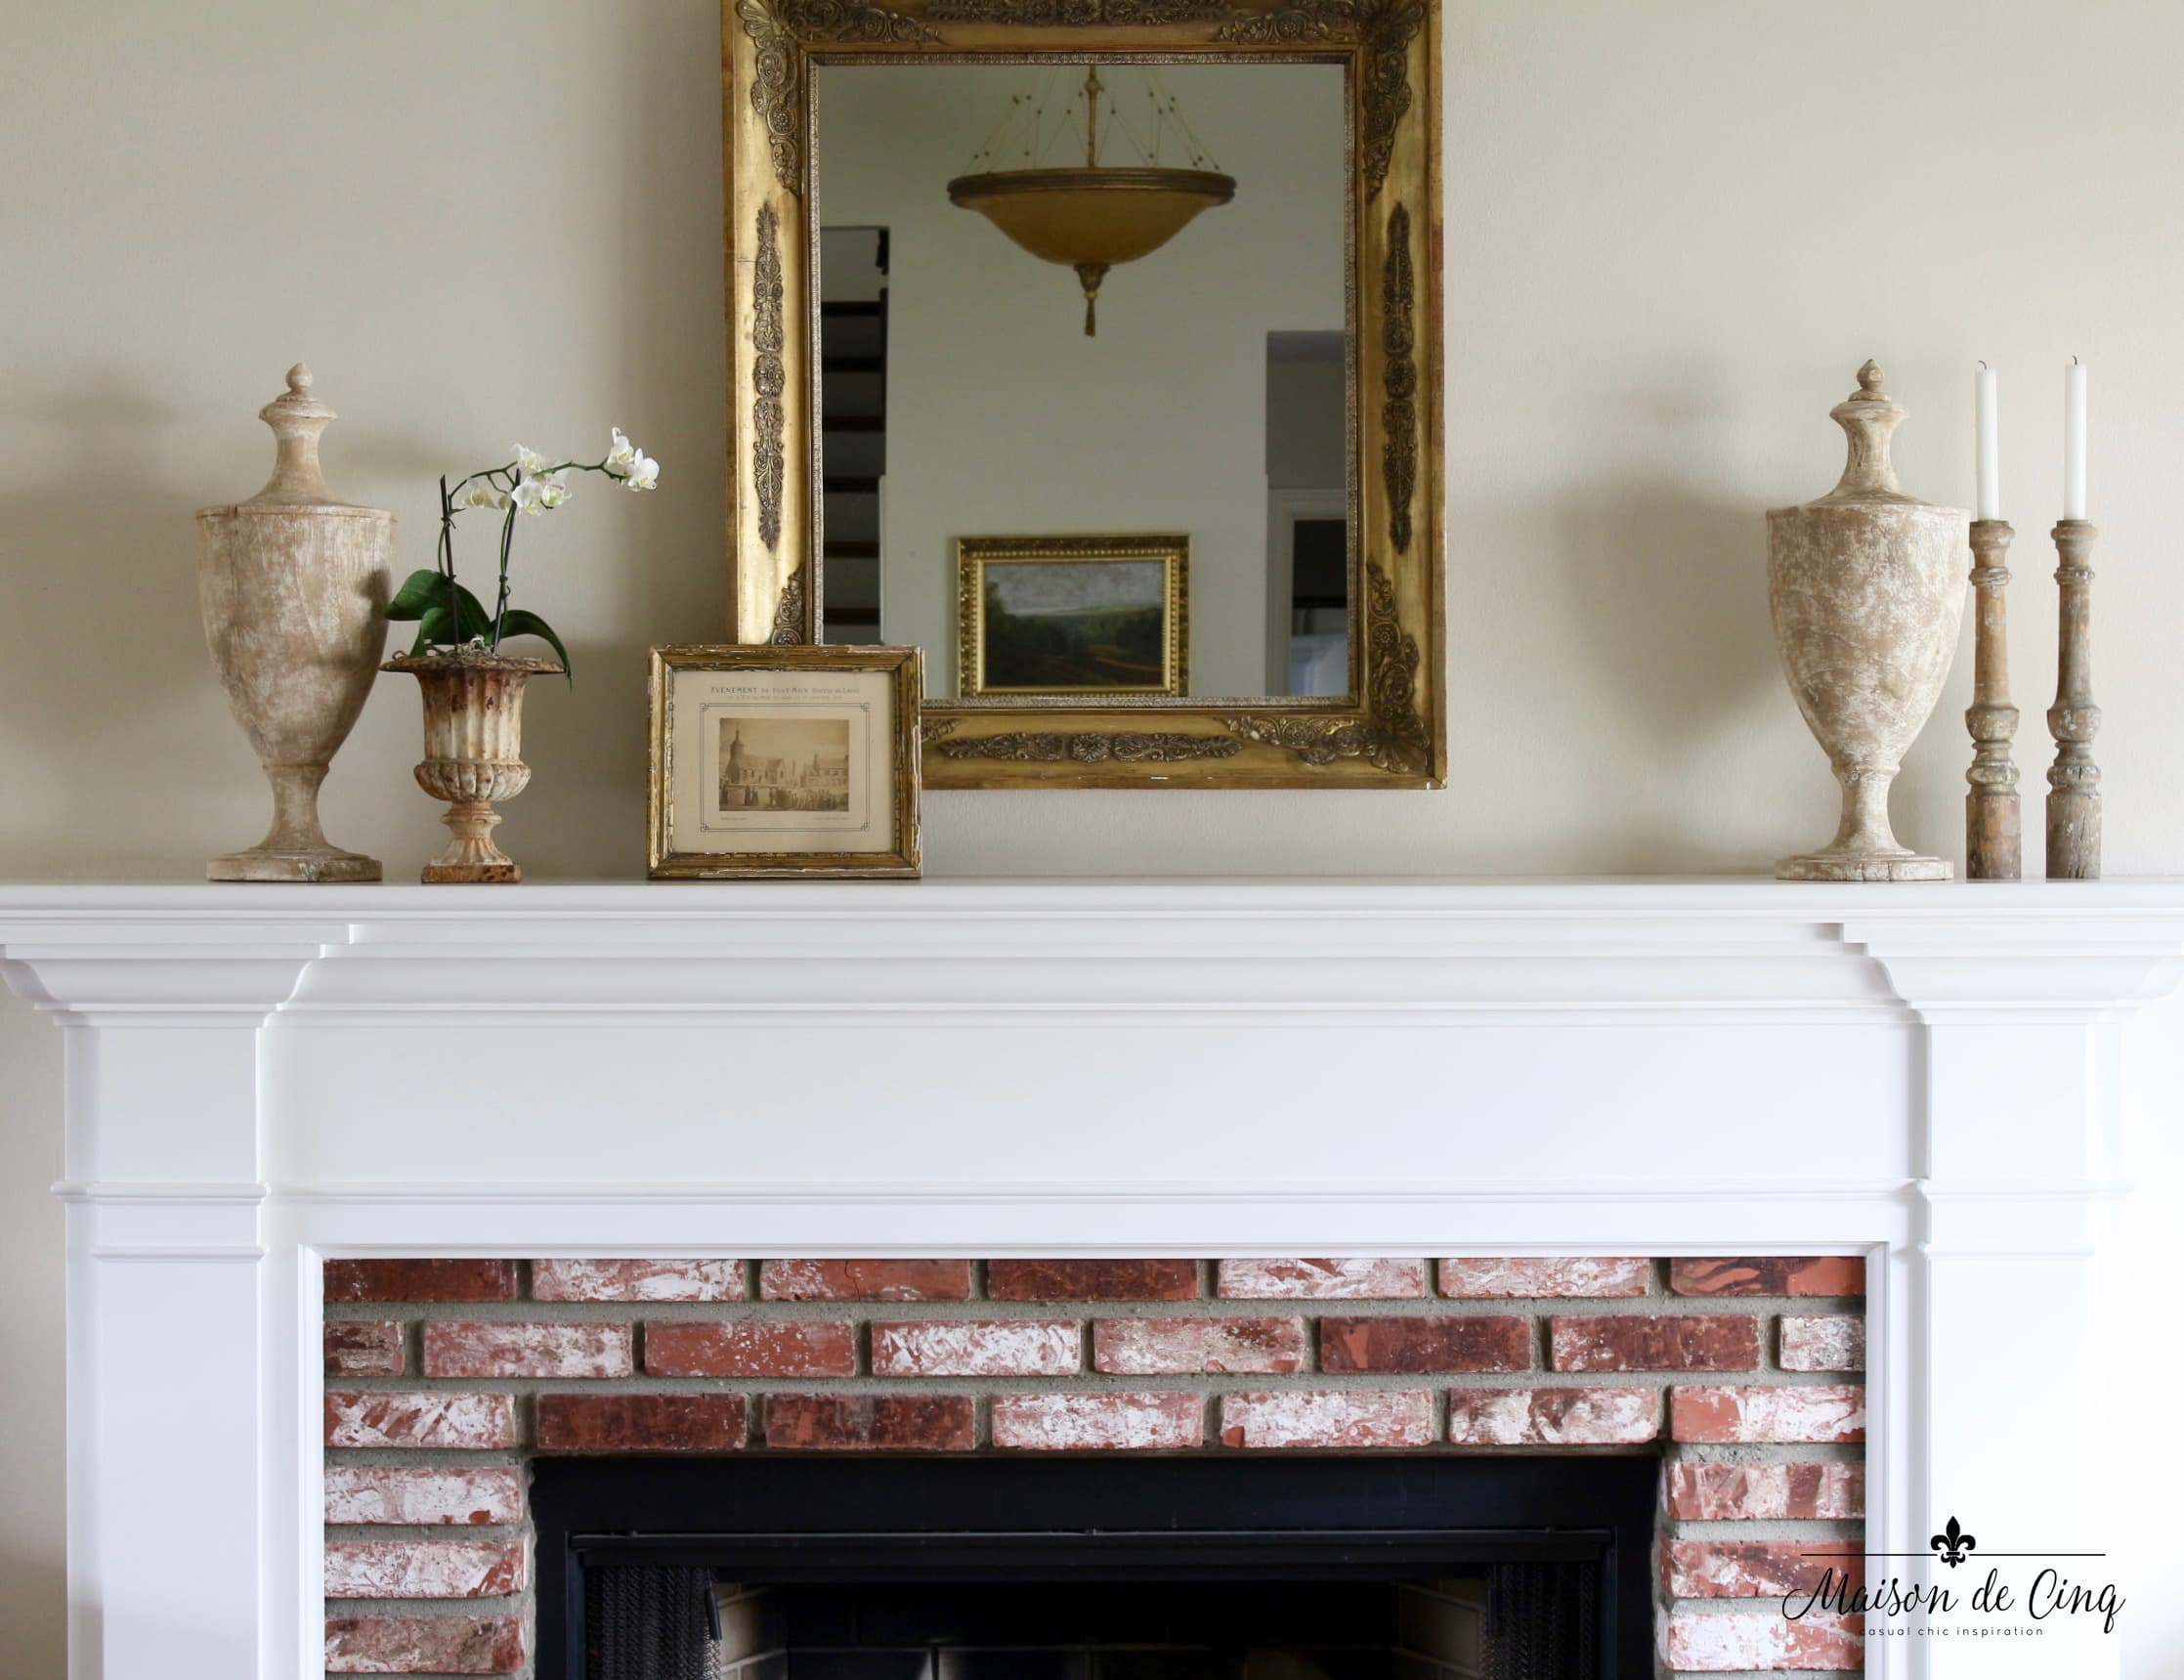 Mantel Decorating: Three Ways to Decorate a Spring Mantel